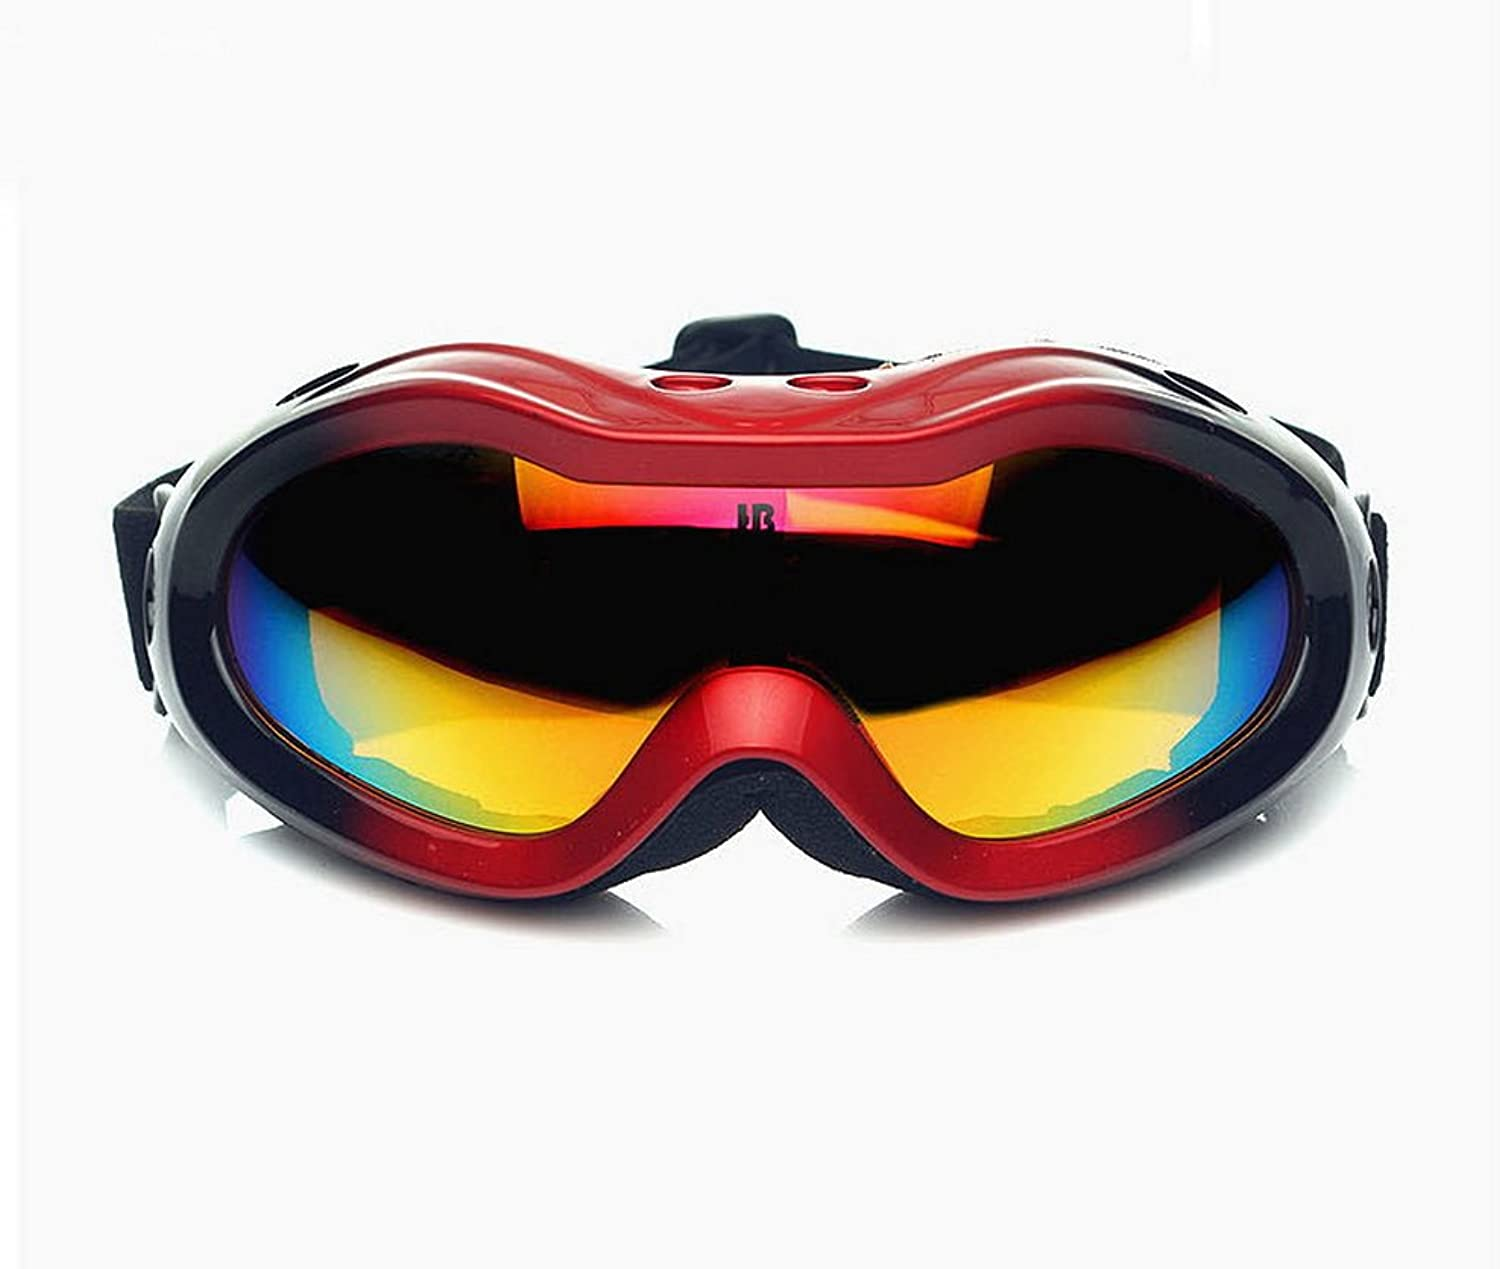 Black&Red Goggles Ski Skating Snowboard Goggles for Kids